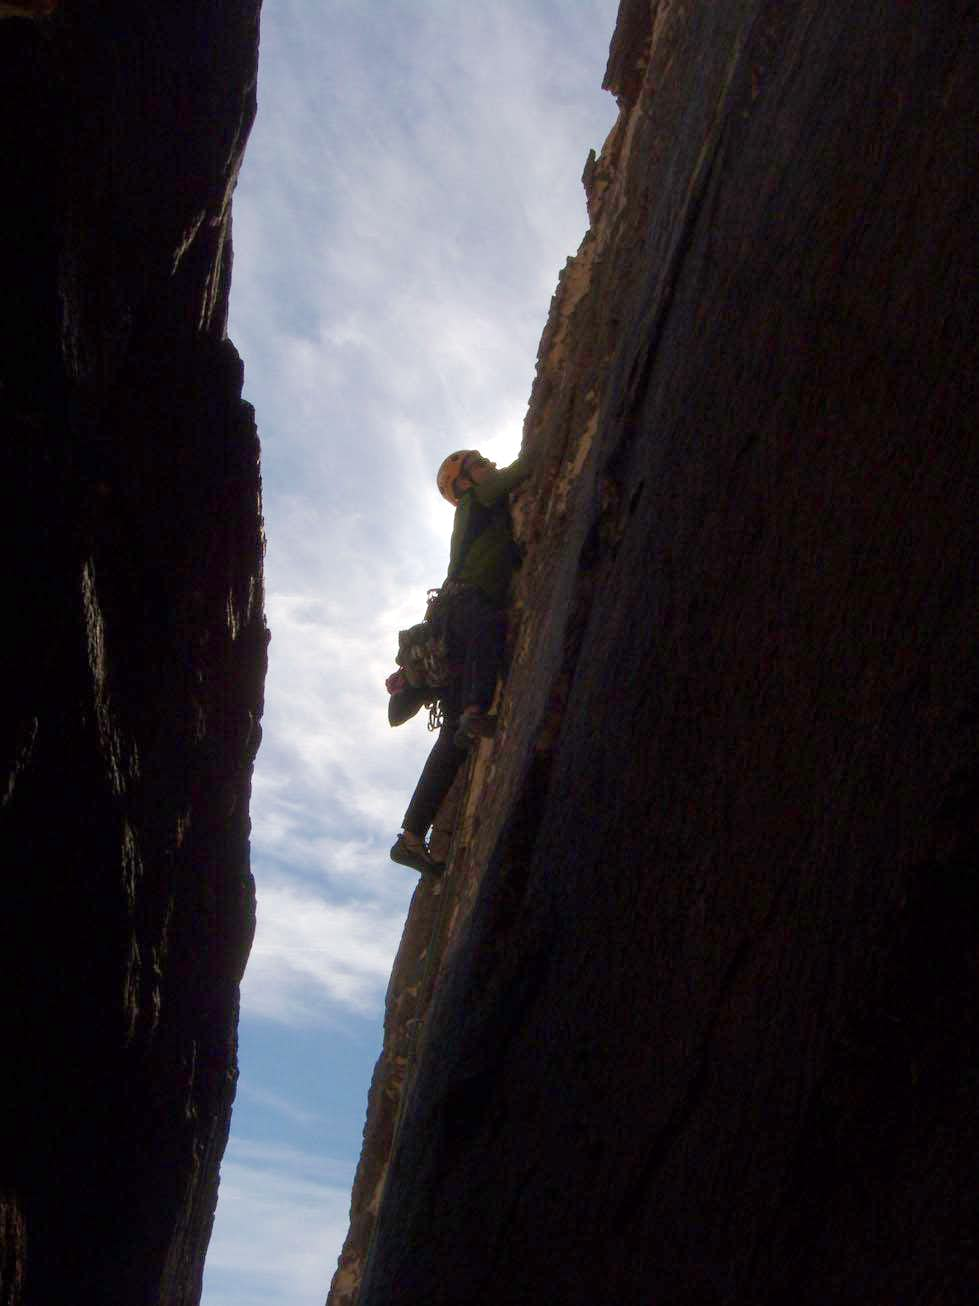 Sideline, 5.9, 4 Pitches